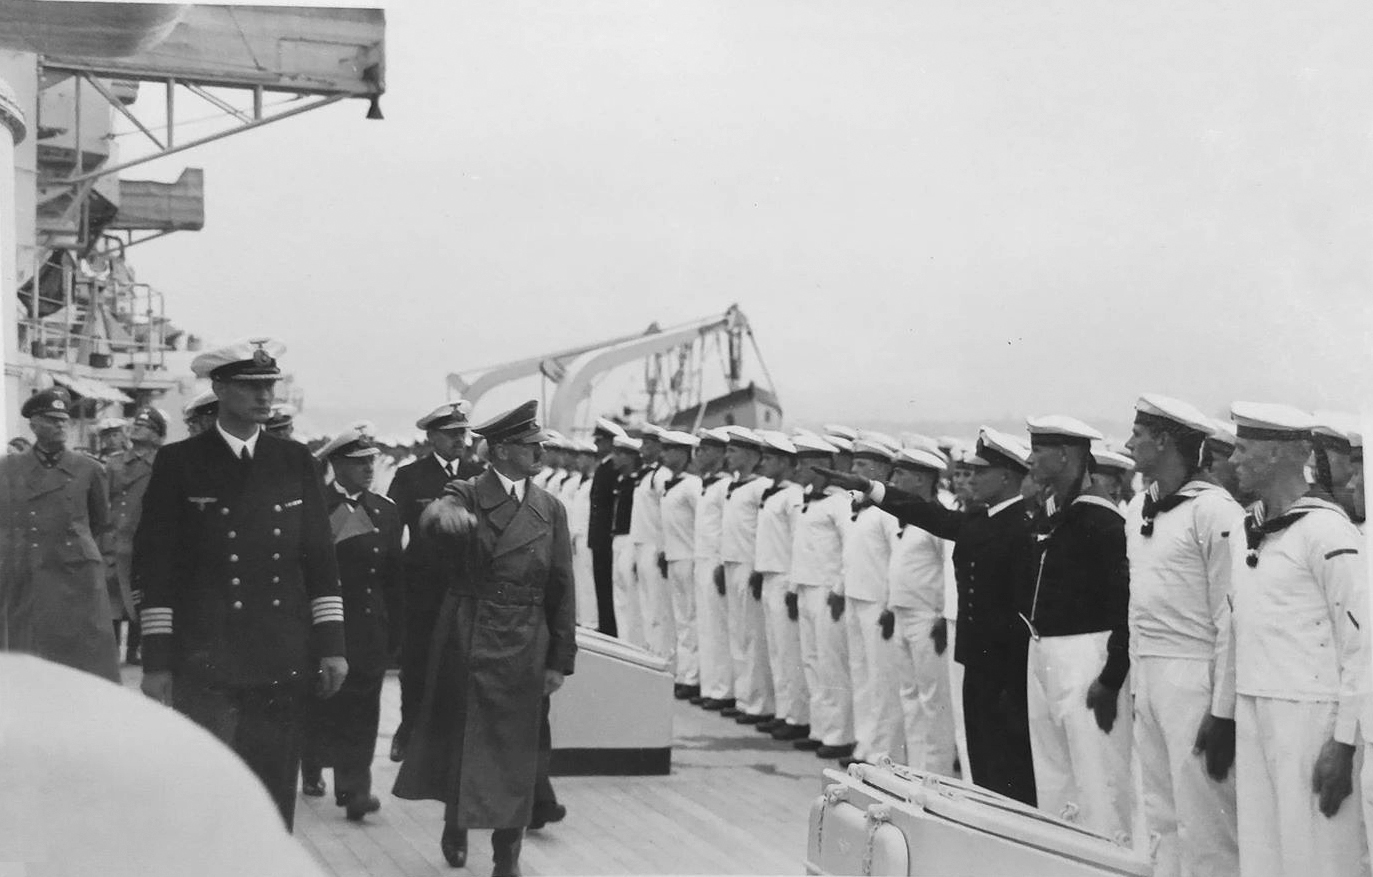 Adolf Hitler inspects the Gneisenau battleship